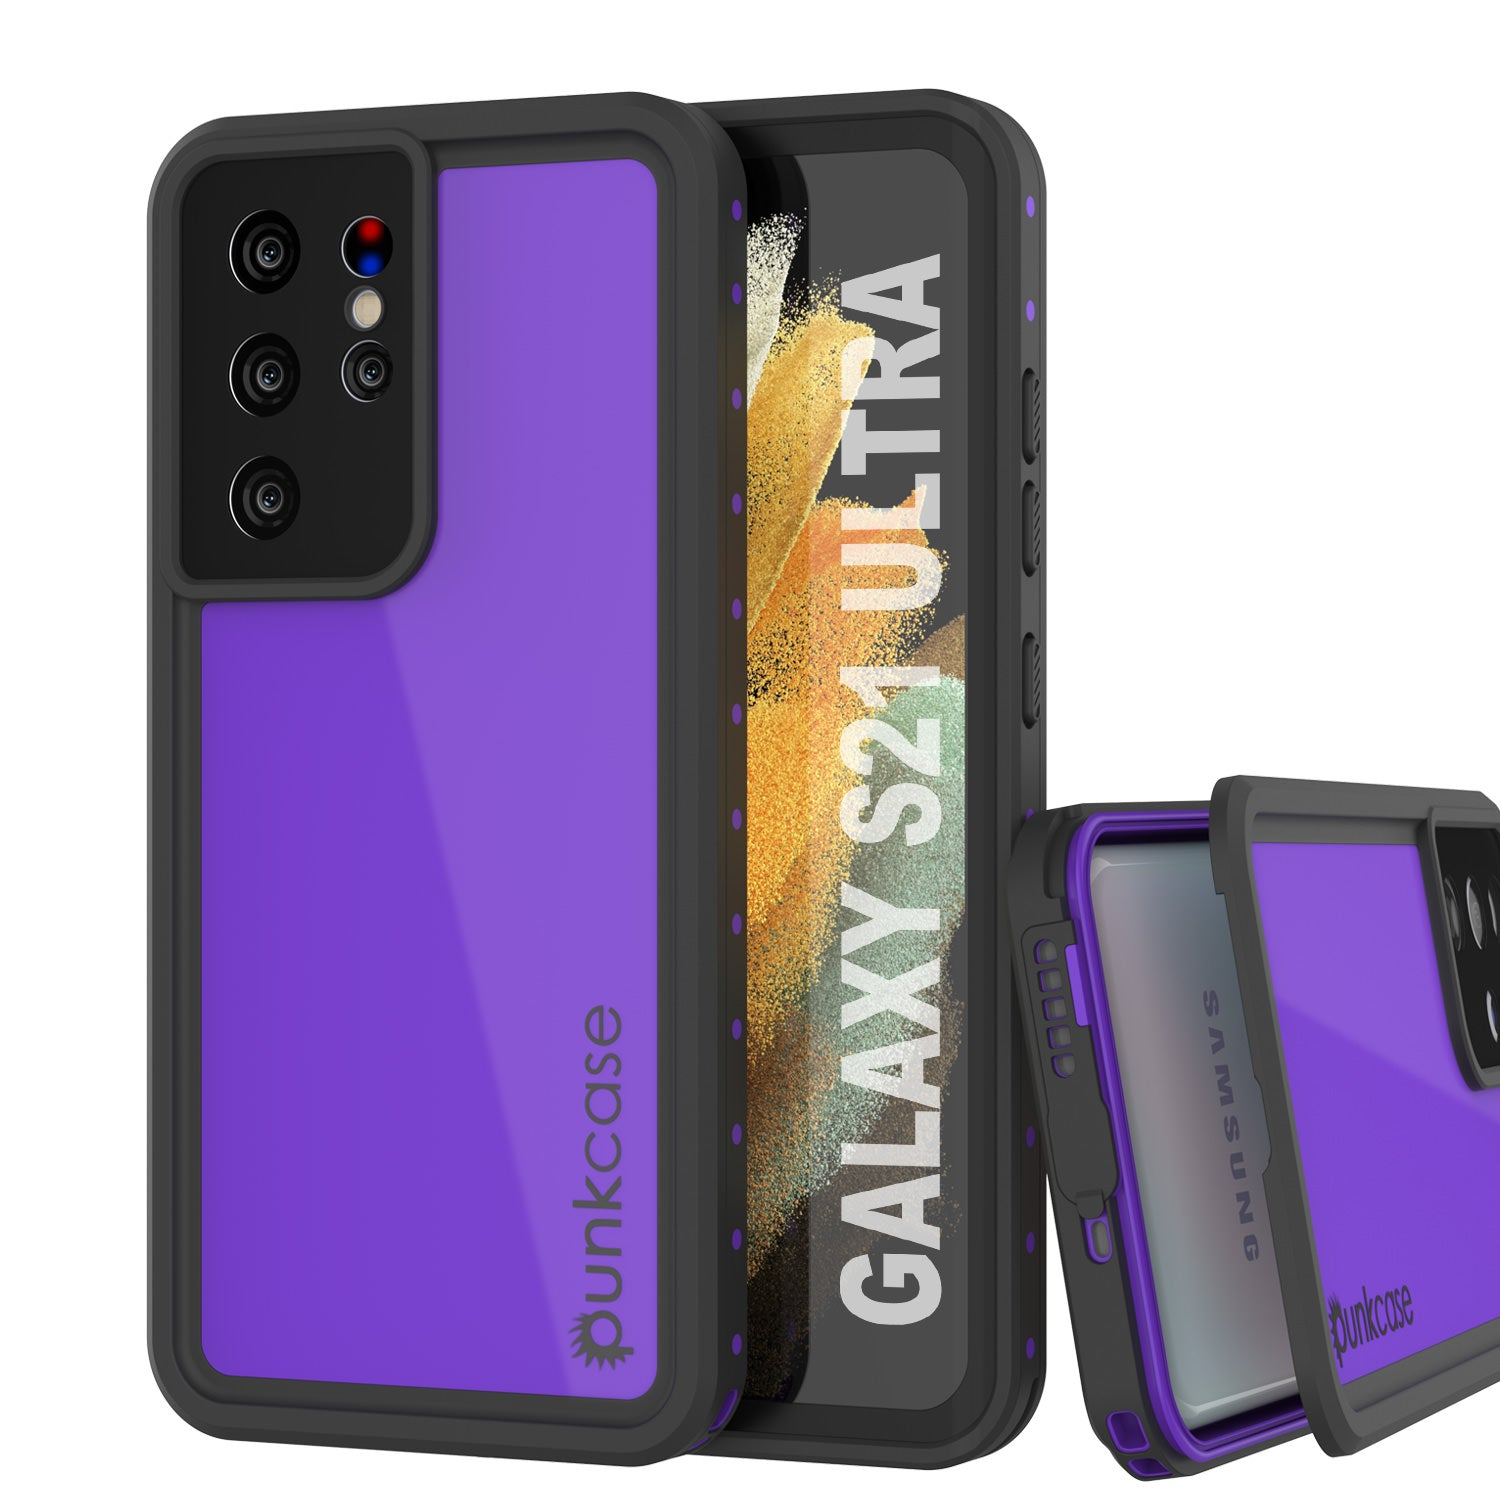 Galaxy S21 Ultra Waterproof Case PunkCase StudStar Purple Thin 6.6ft Underwater IP68 Shock/Snow Proof